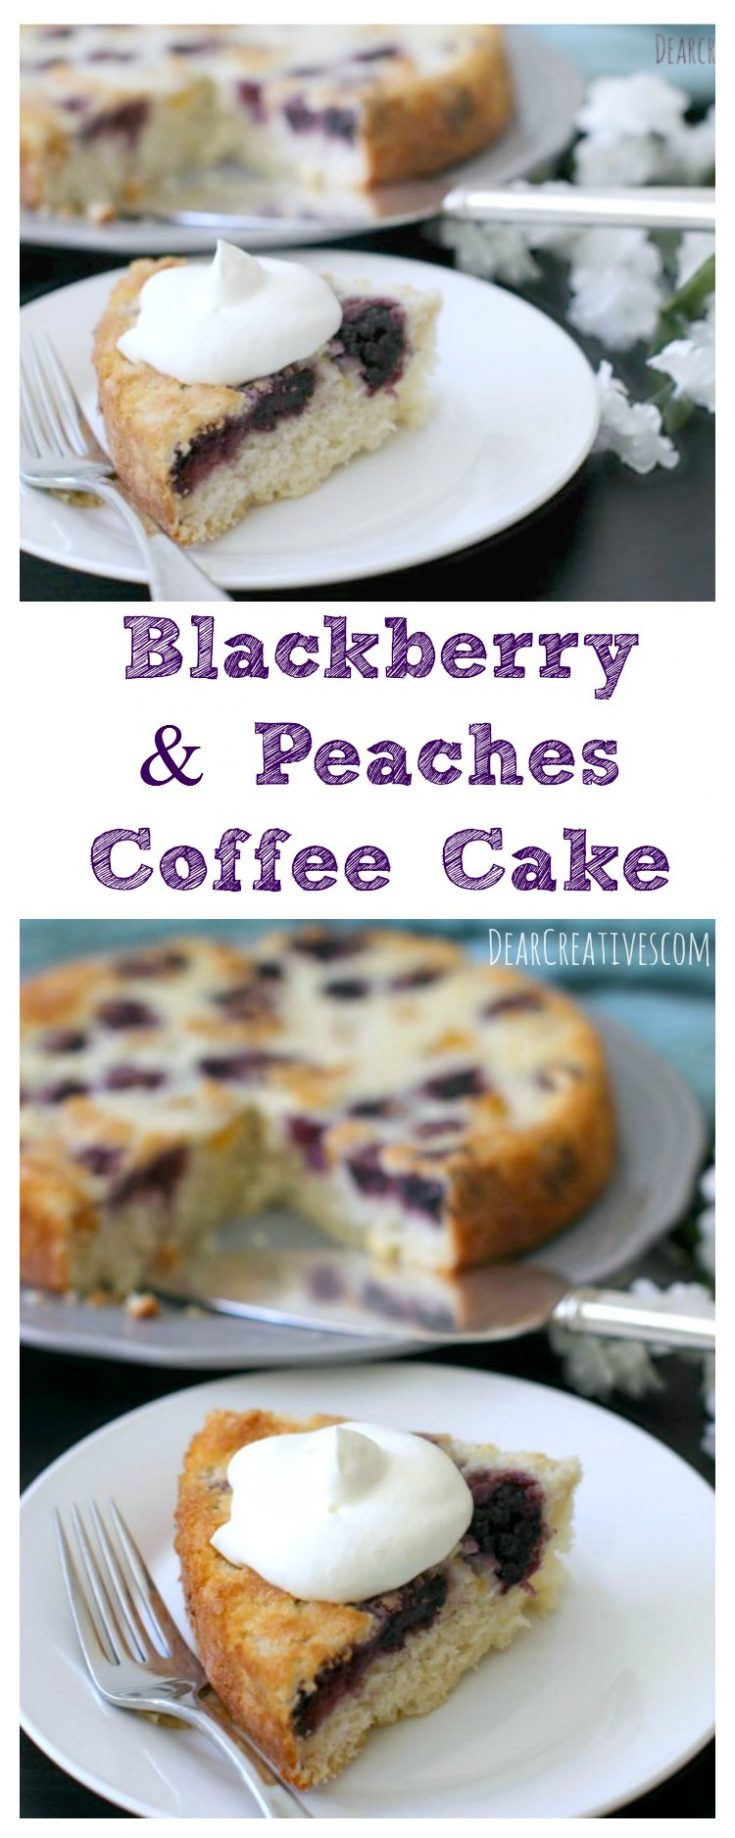 Cake Recipes Blackberries And Peaches Coffee Cake This cake recipe is a cross between a coffee cake and upside down cake. It's easy to make and pairs well with coffee, tea or iced tea